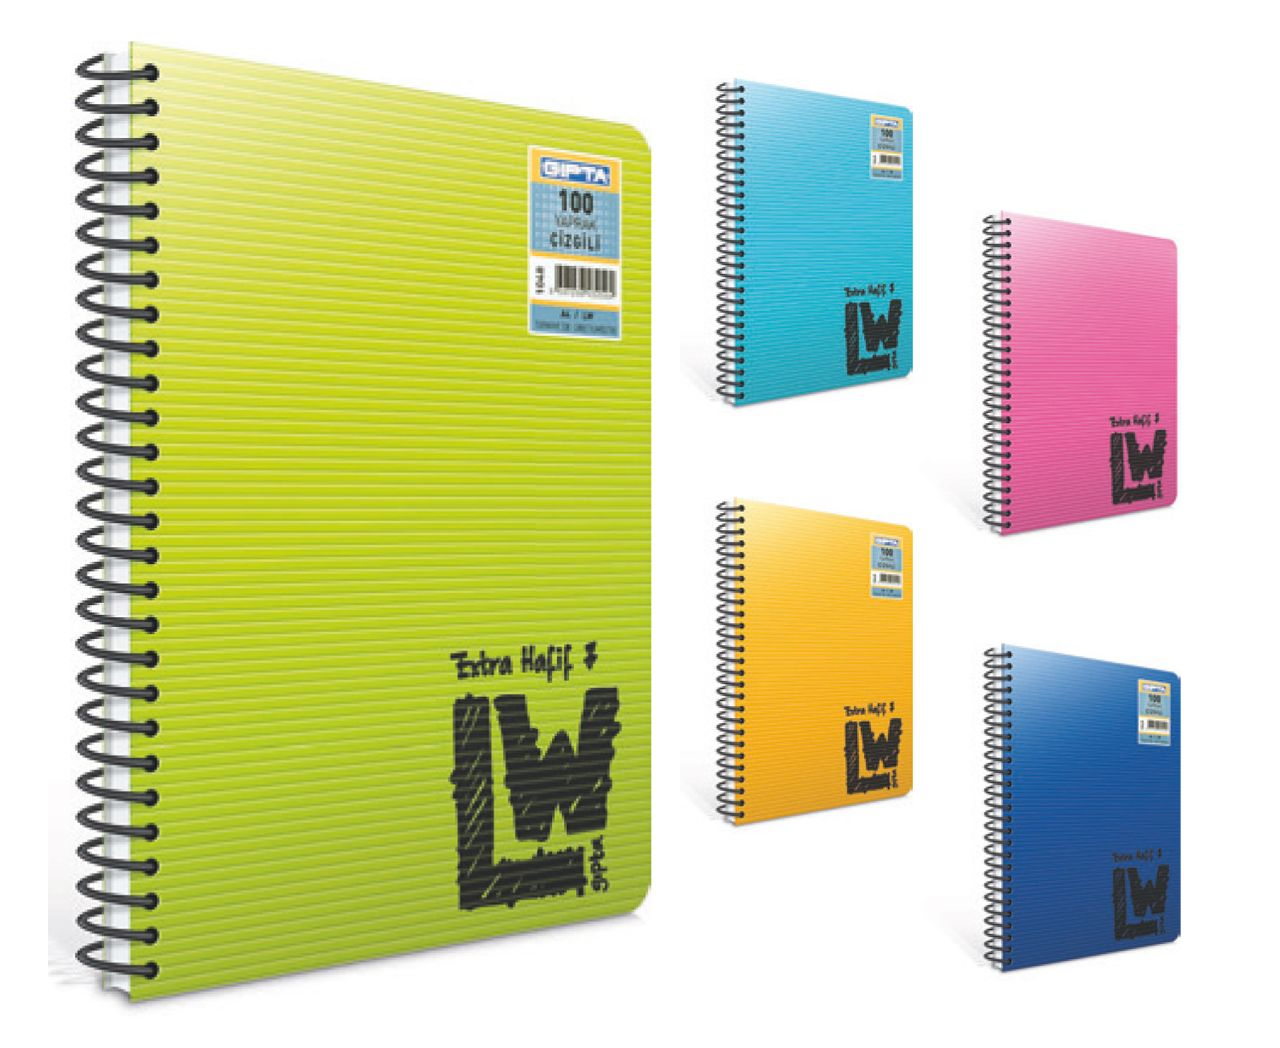 Gipta Notebook LW - A5 - 100 Sheets - Ruled =